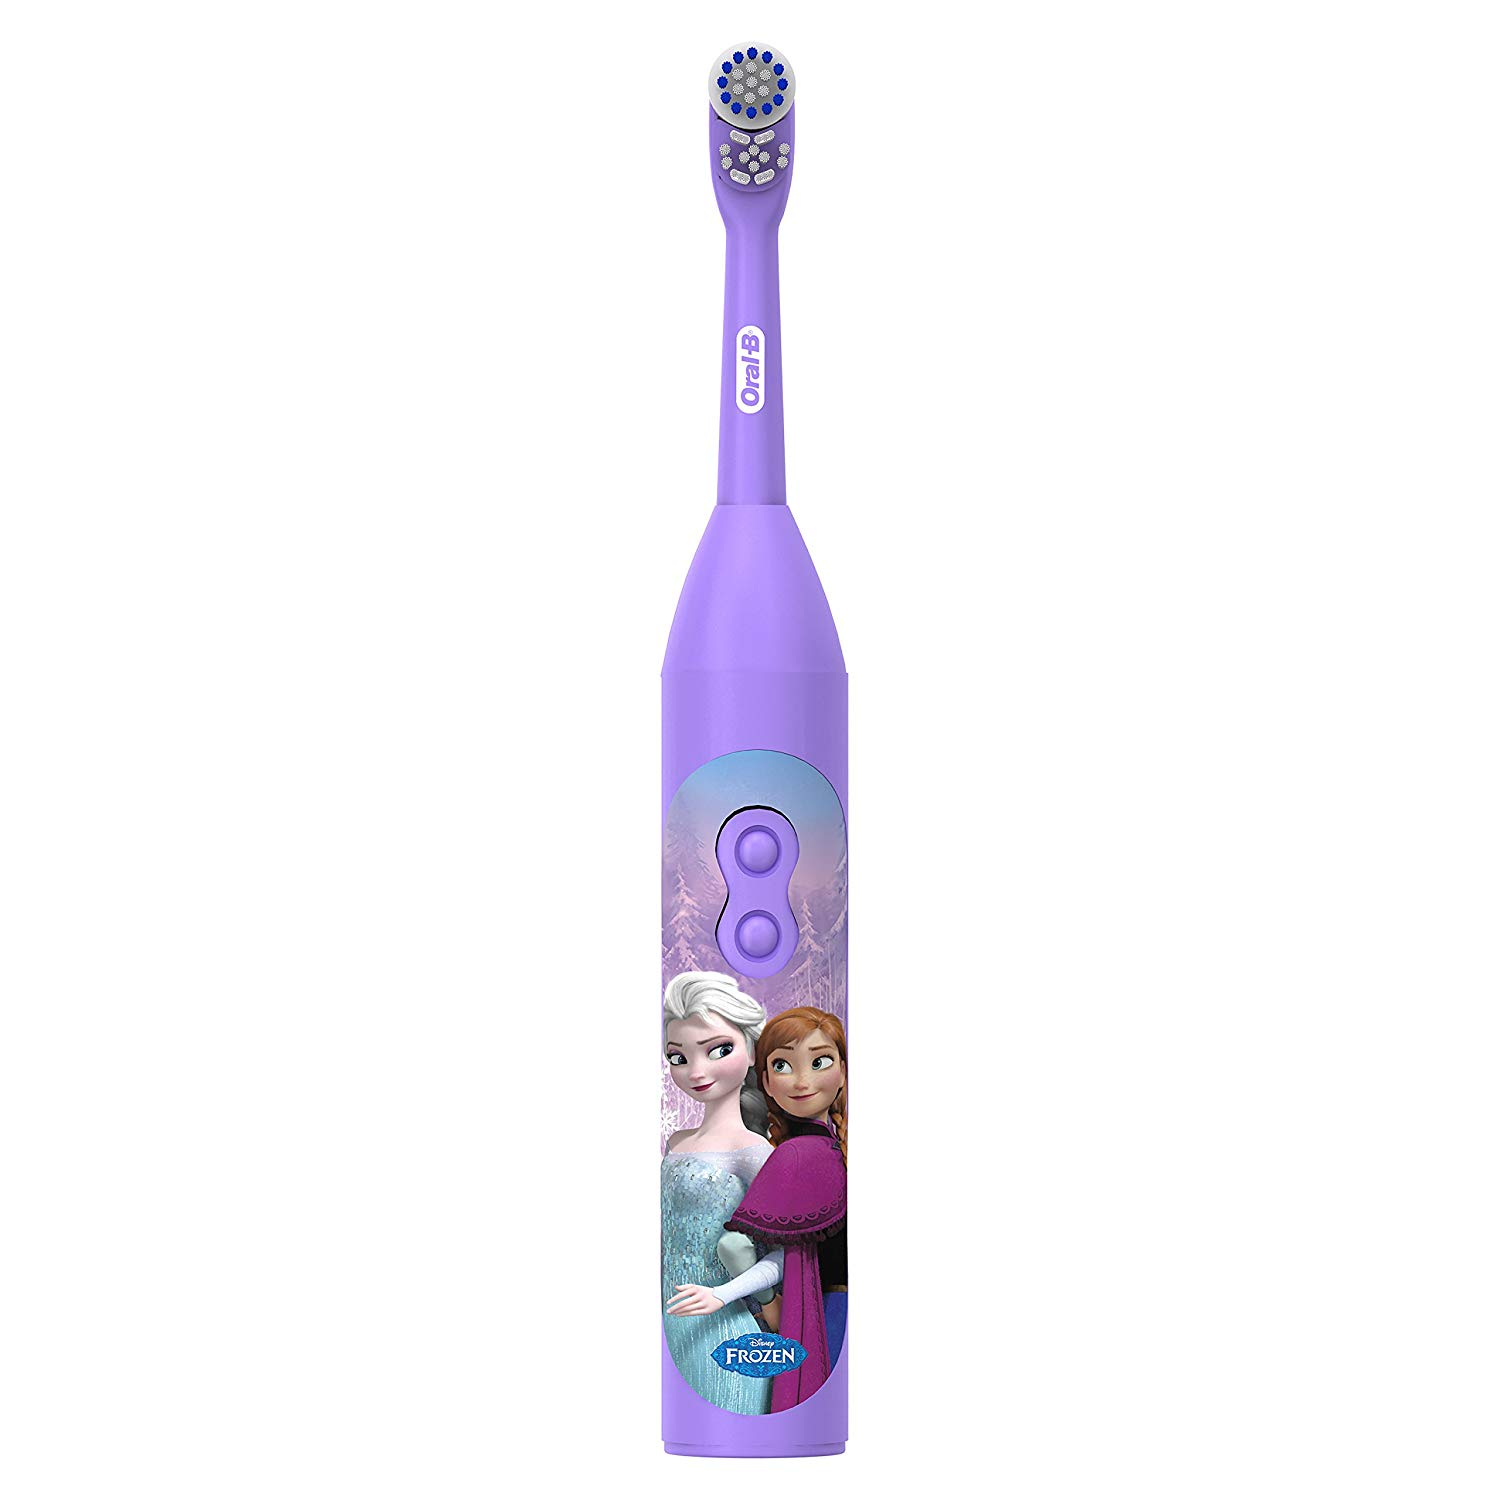 71ji2Bk 3jOL. SL1500 - Oral-B Pro-Health Jr. Battery Powered Kid's Toothbrush featuring Disney's Frozen, Soft, 1ct, Styles May Vary